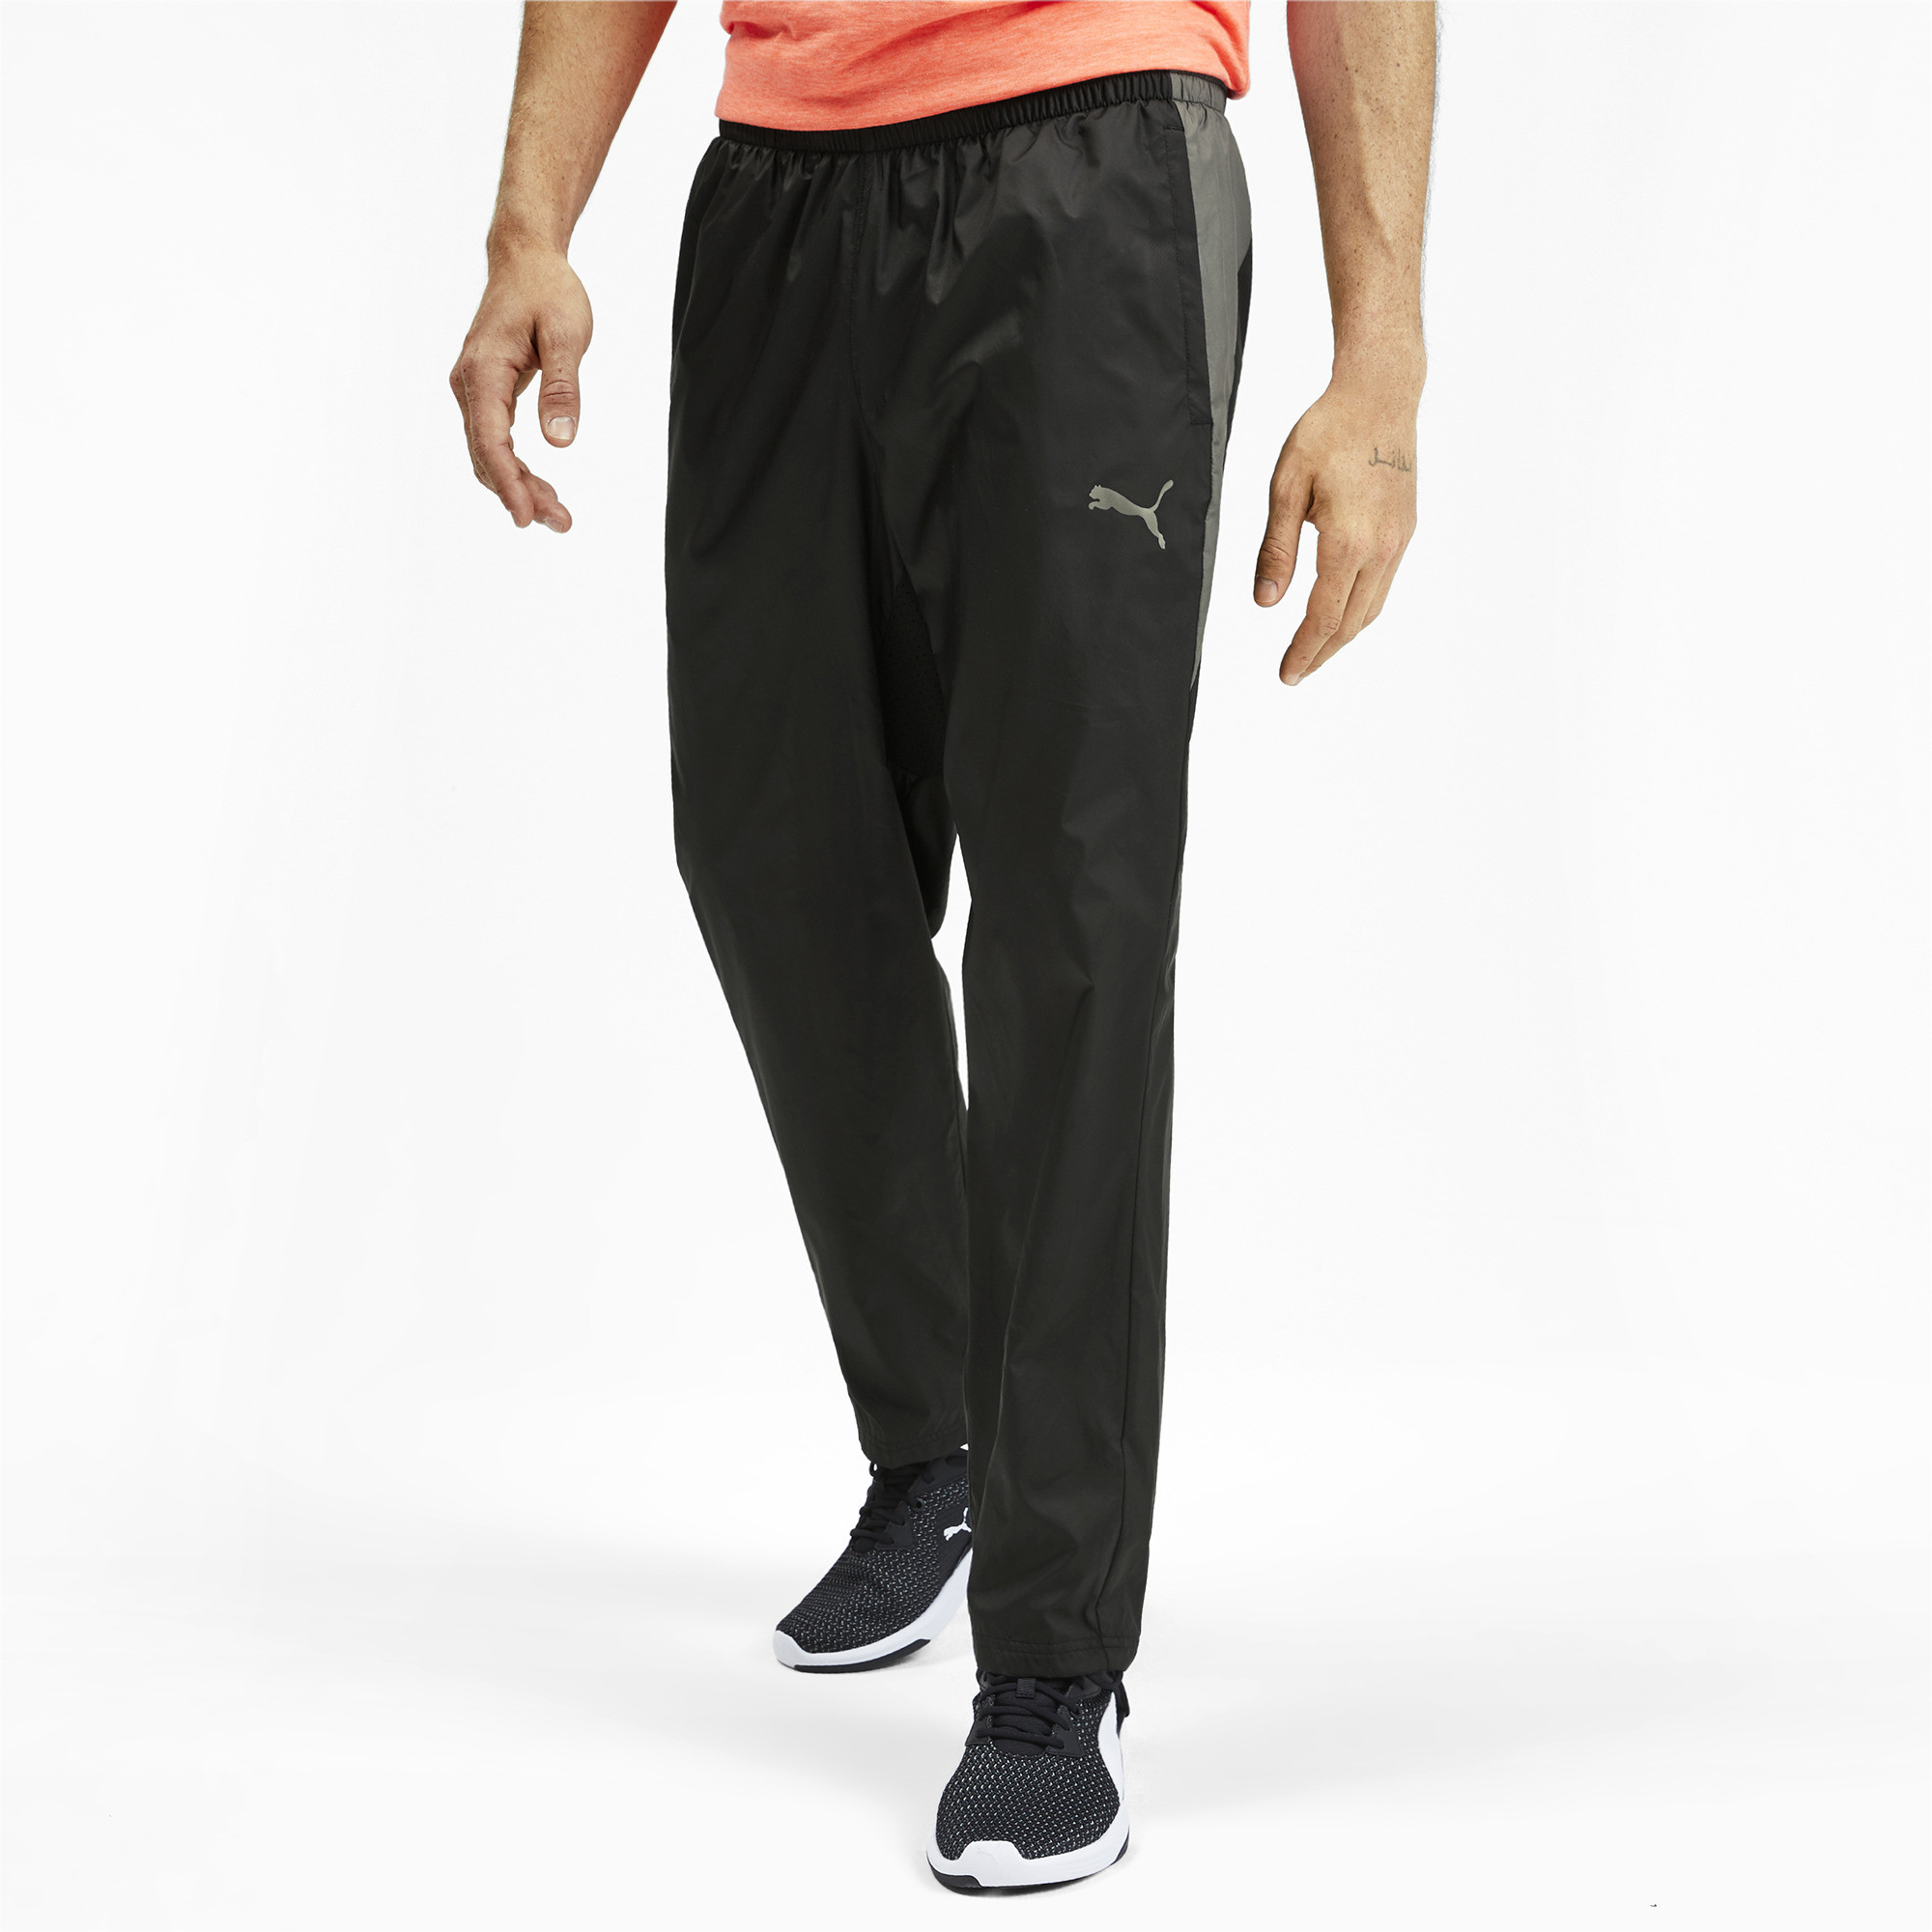 PUMA-Reactive-Men-039-s-Woven-Pants-Men-Woven-Pants-Training miniatura 4